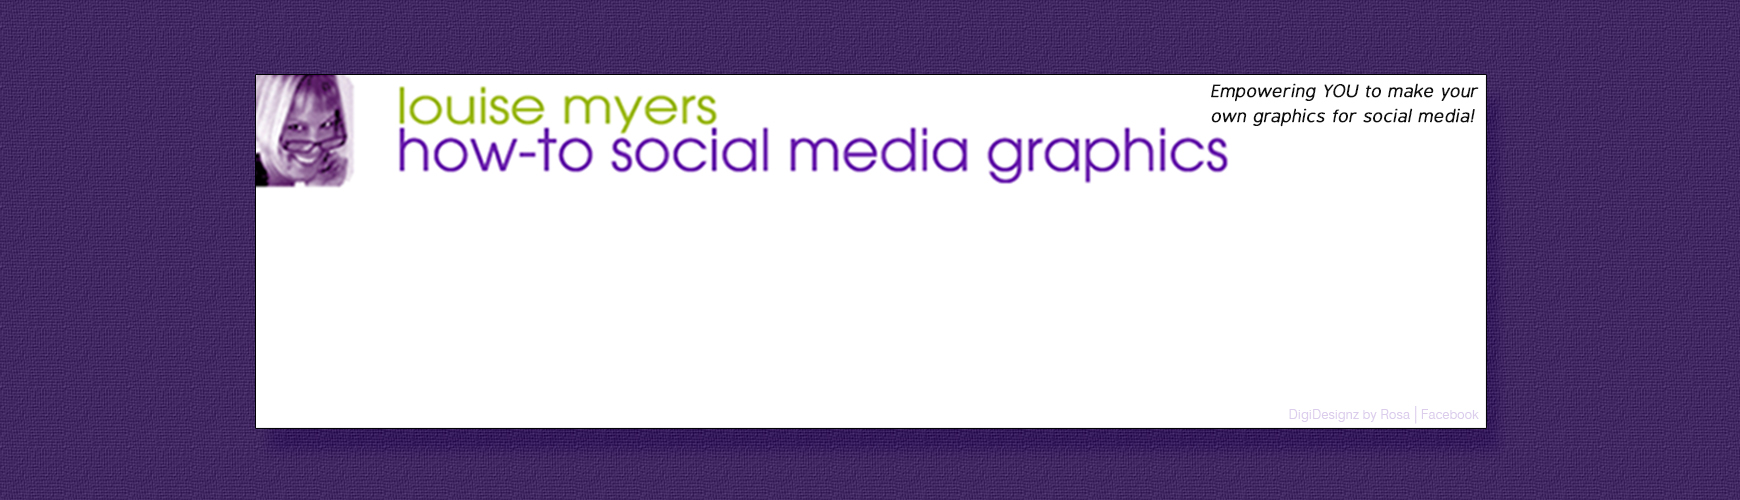 Louise Myers. How to Social Media Graphics